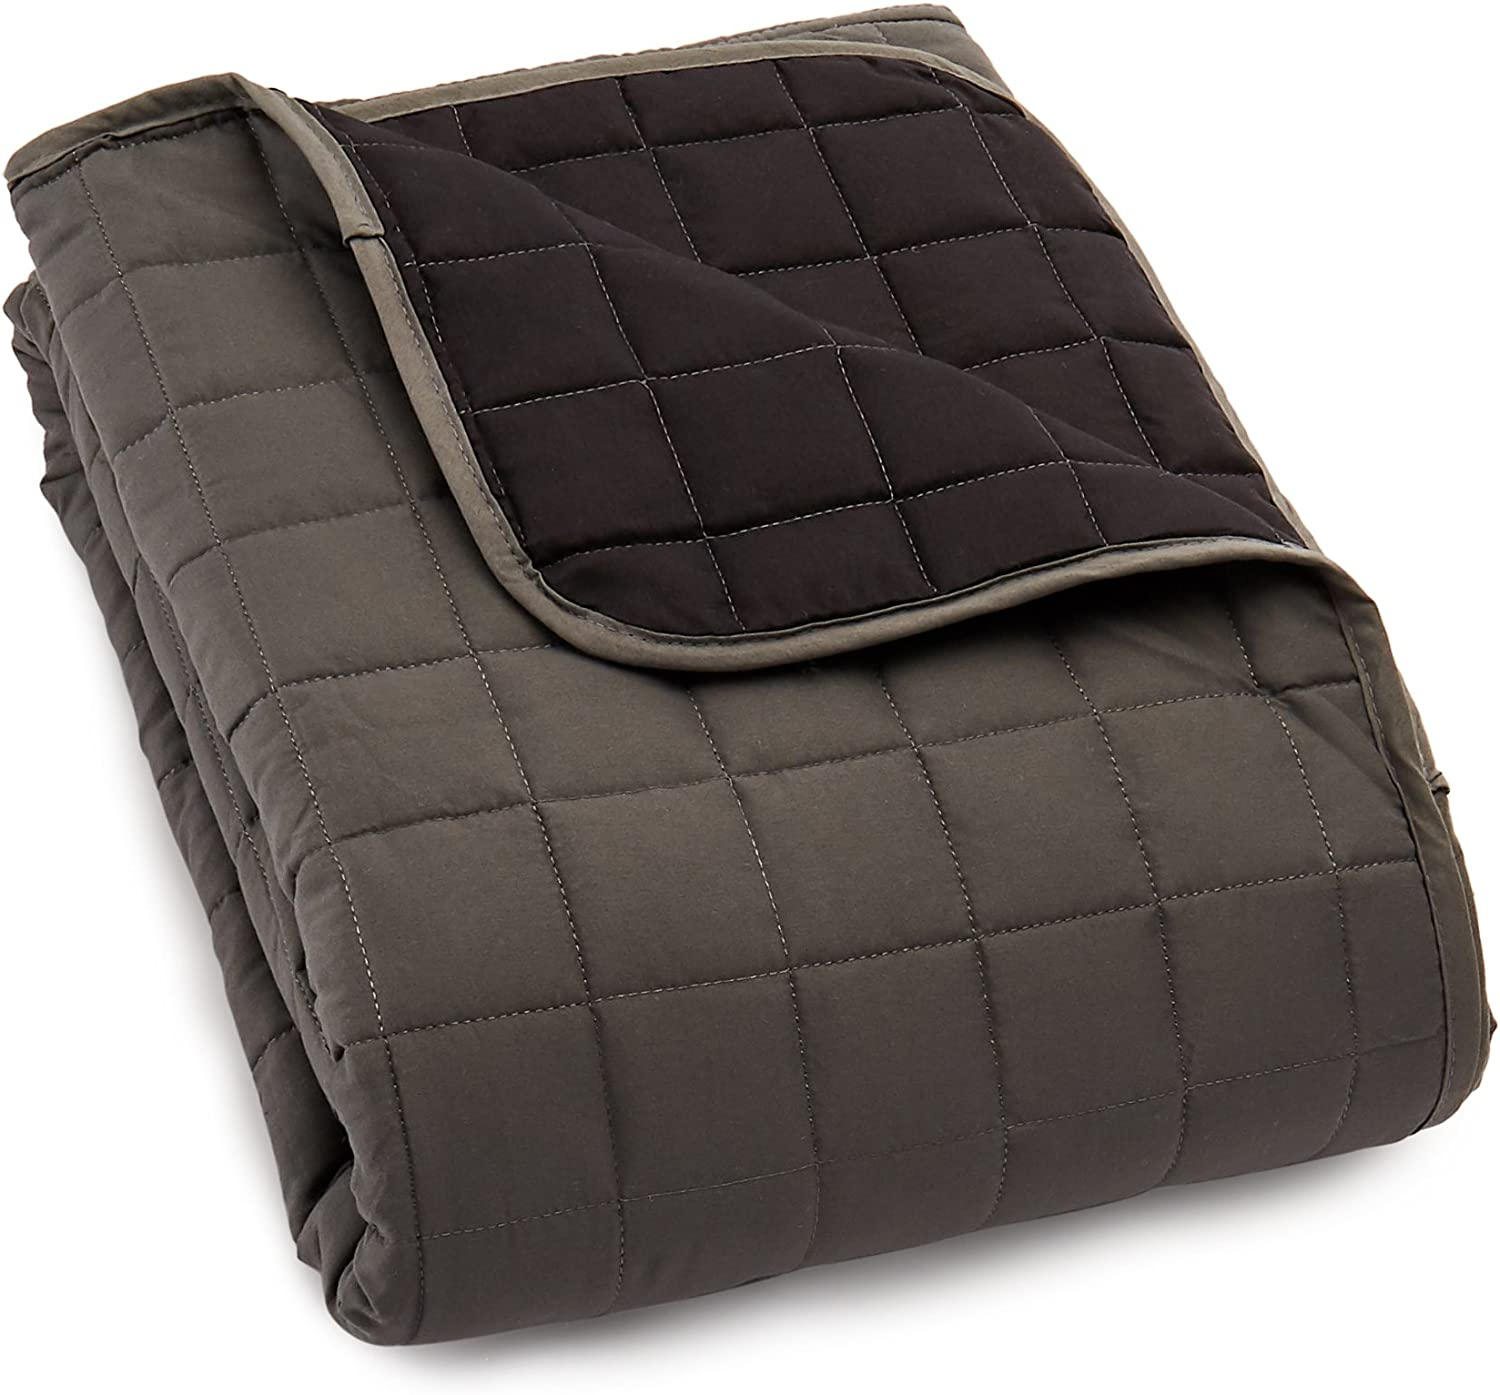 Elegance Linen Quilted Slip Cover Water-Absorbent Furniture Protector for Love Seat, Gray